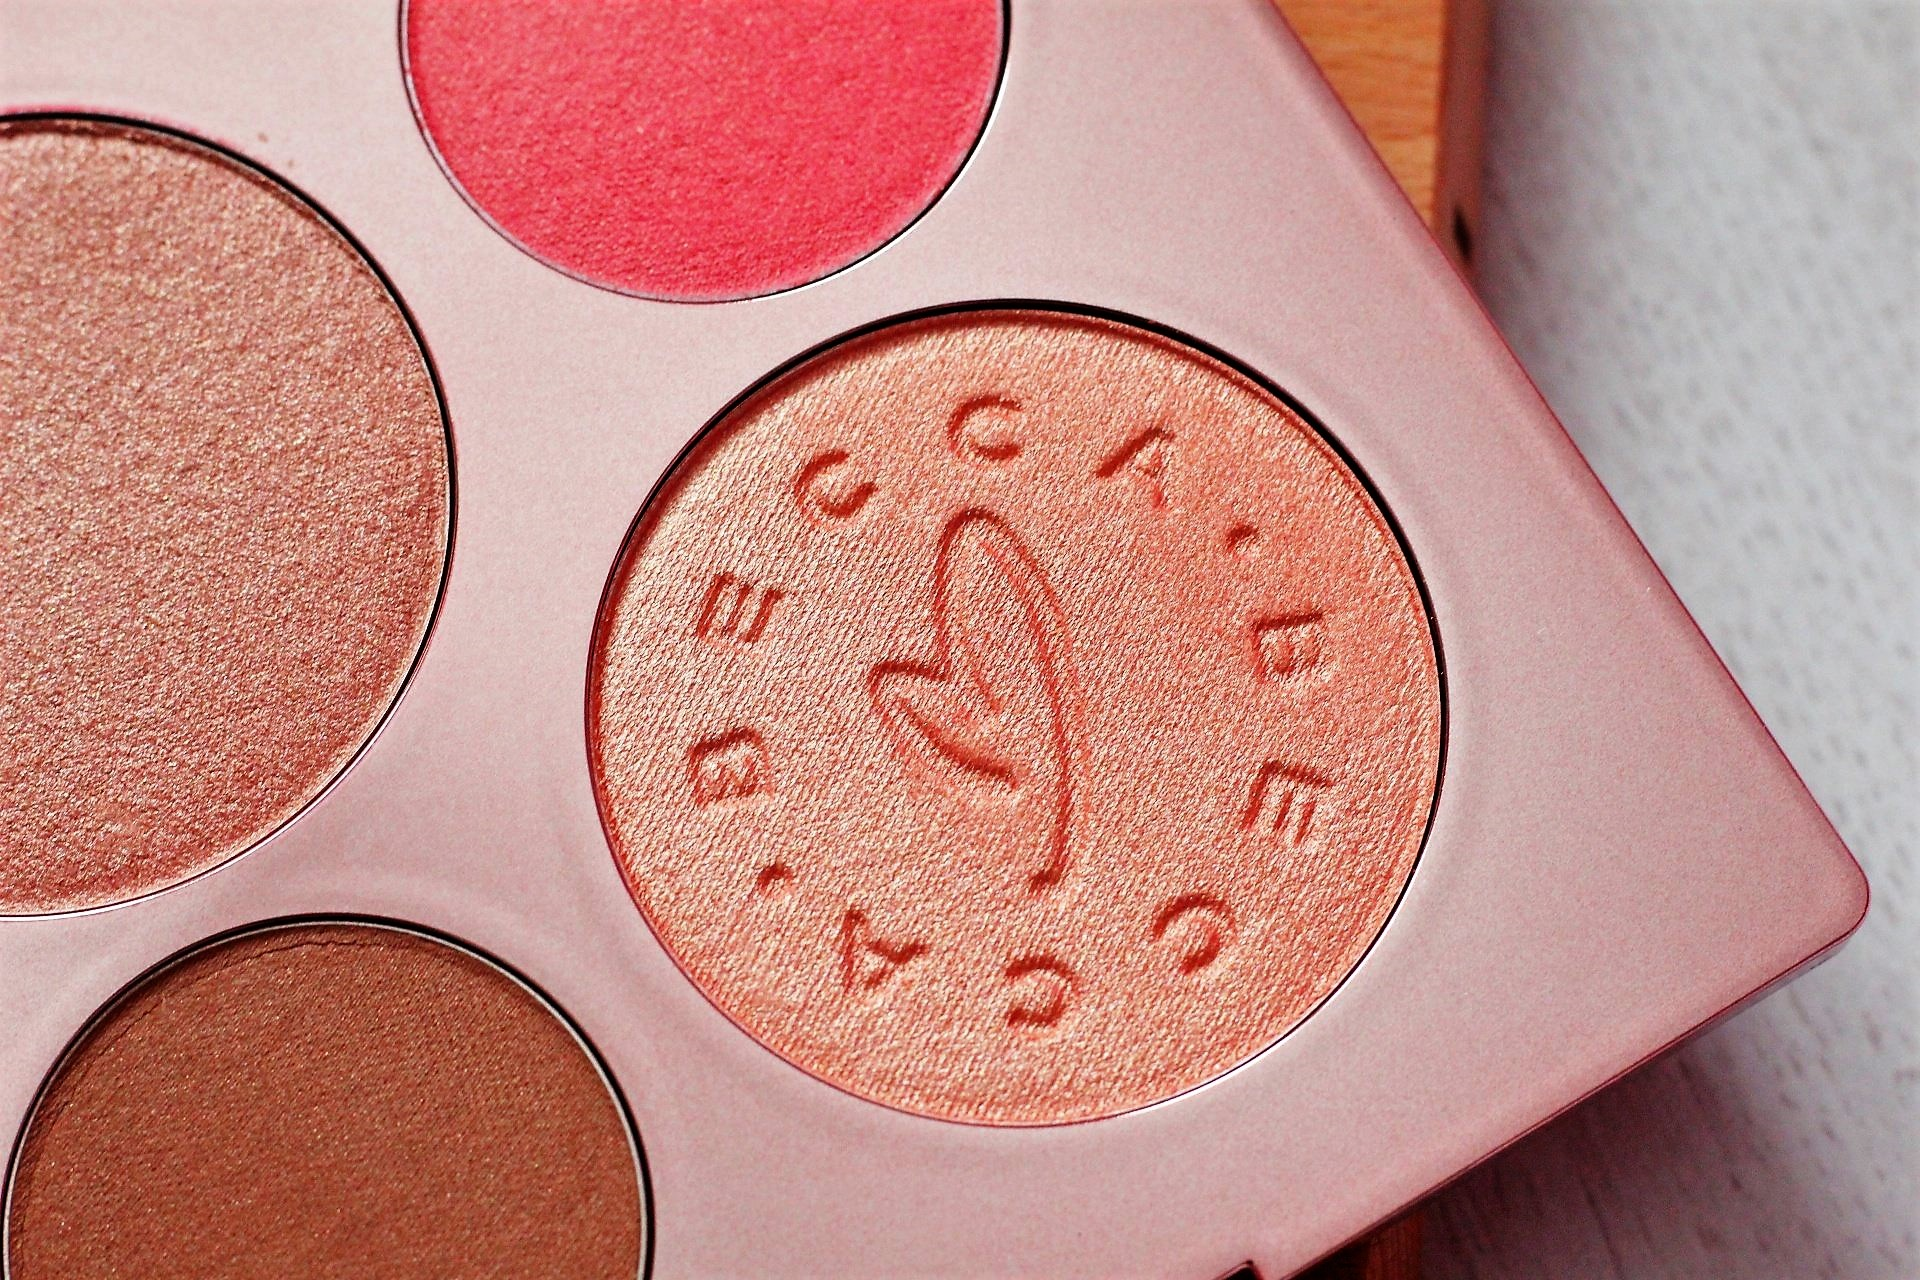 Becca x Chrissy Teigan Glow Face Palette Review and Swatches 5 (2).jpeg